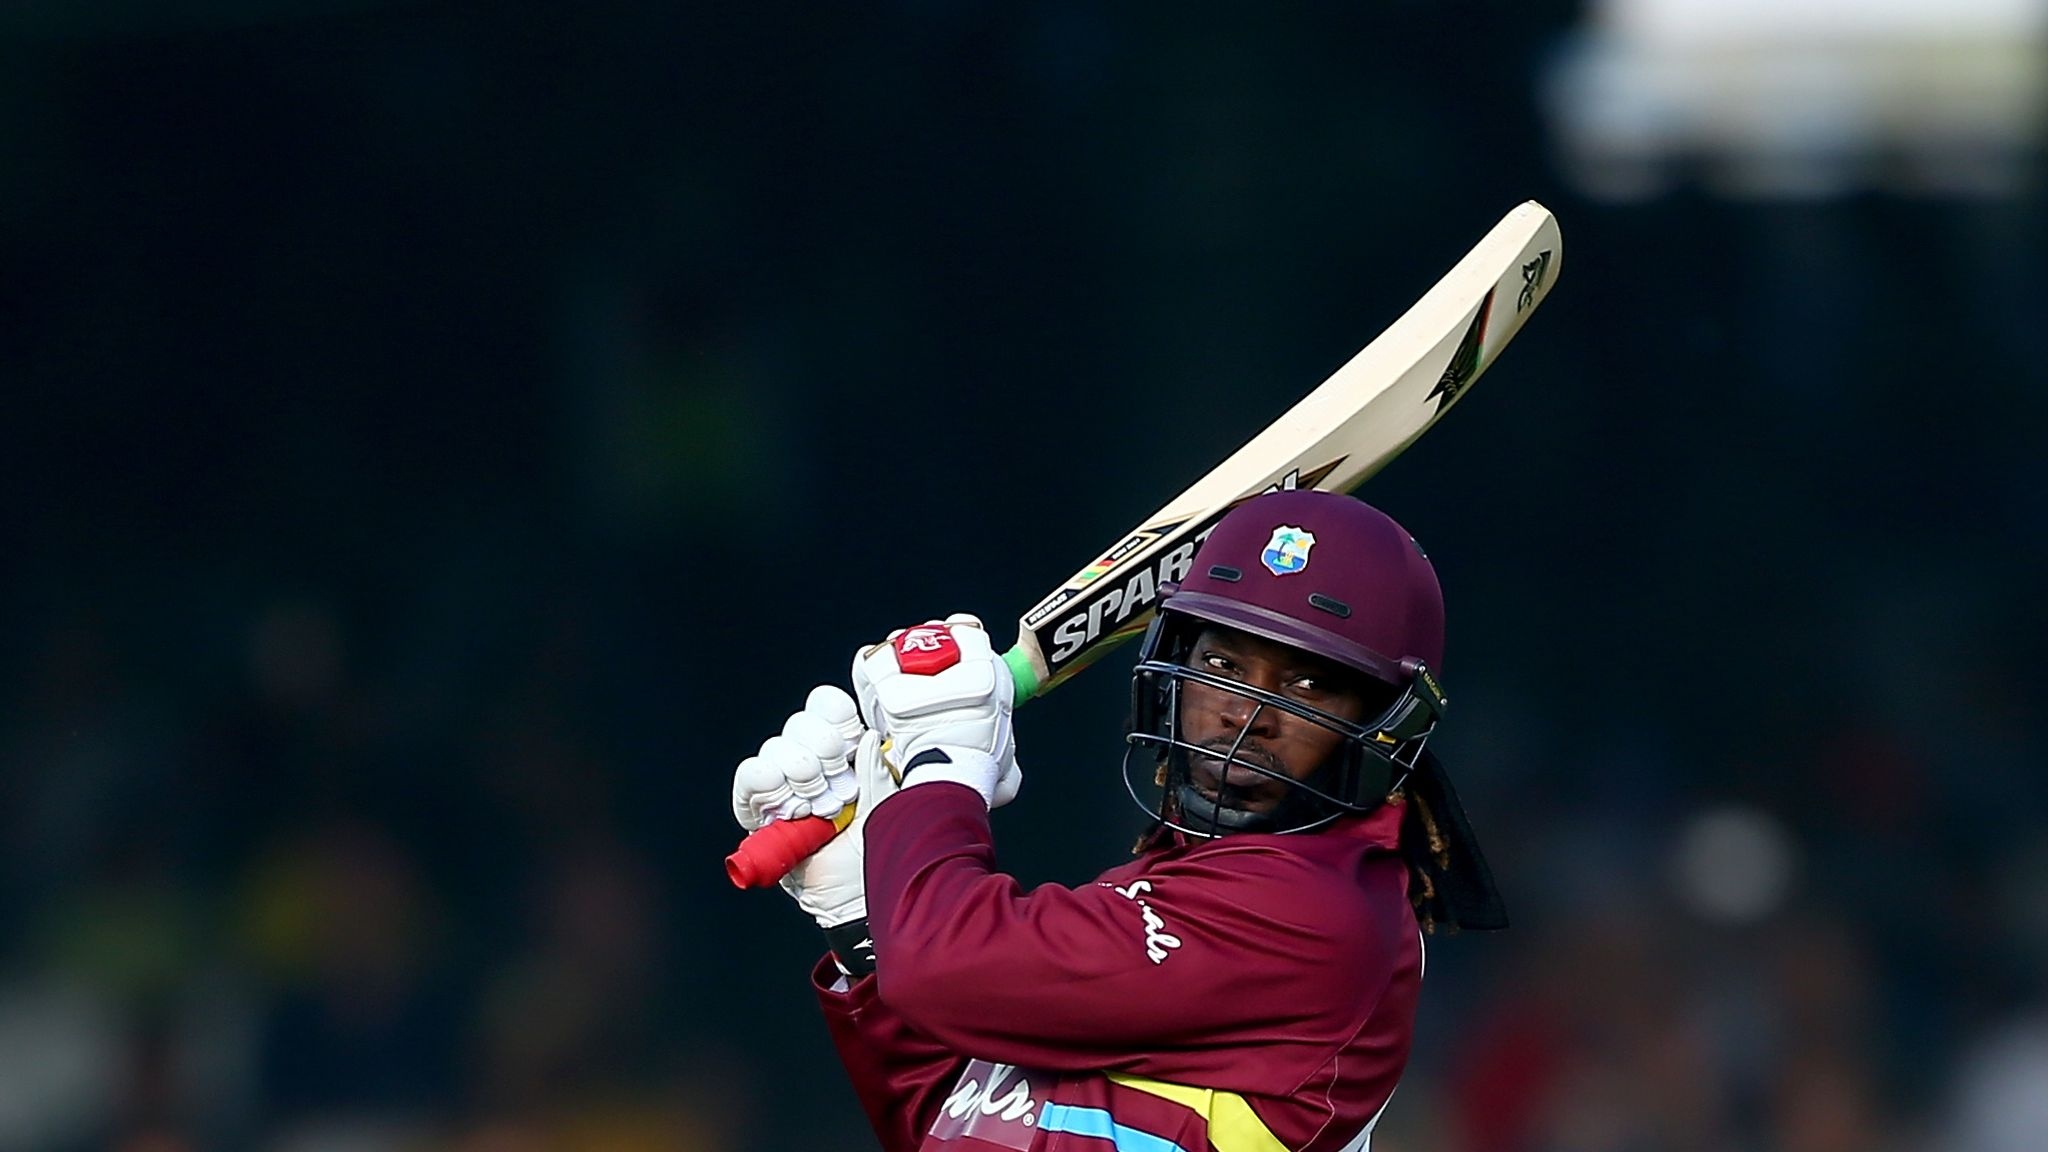 The Hundred Draft: Chris Gayle, David Warner, Steve Smith - who should be picked No 1?